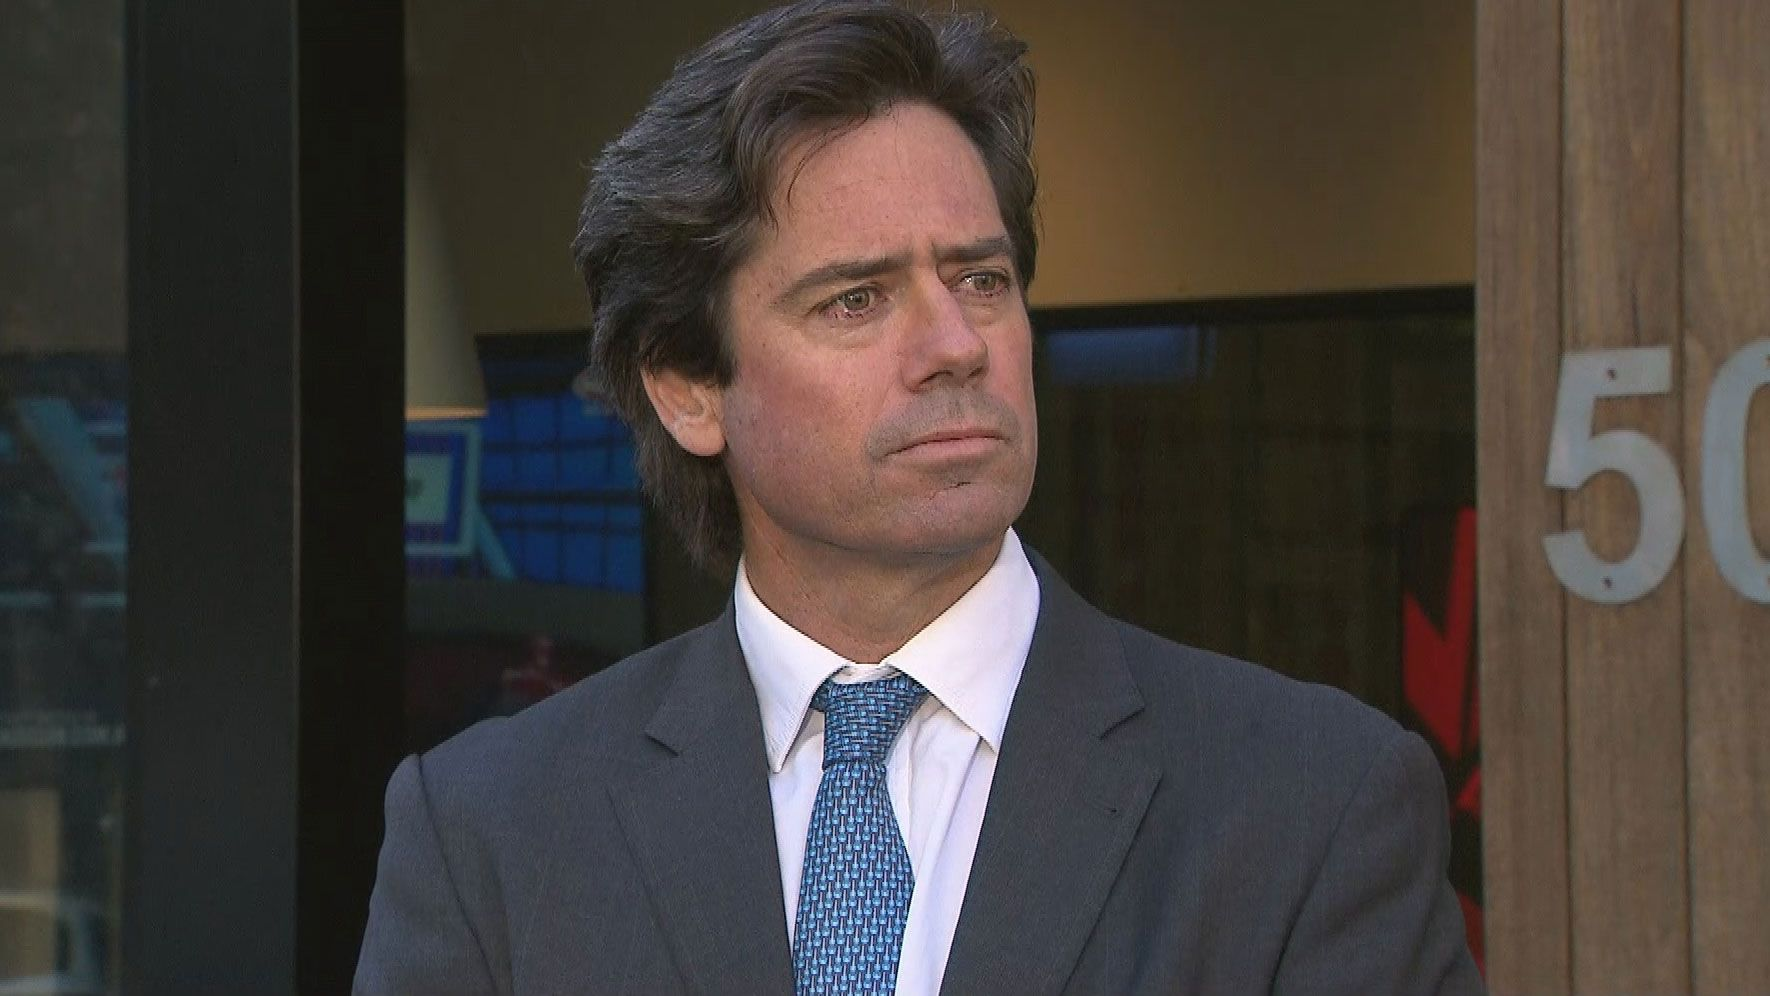 AFL boss Gillon McLachlan reveals Perth will host AFL grand final if MCG is unavailable